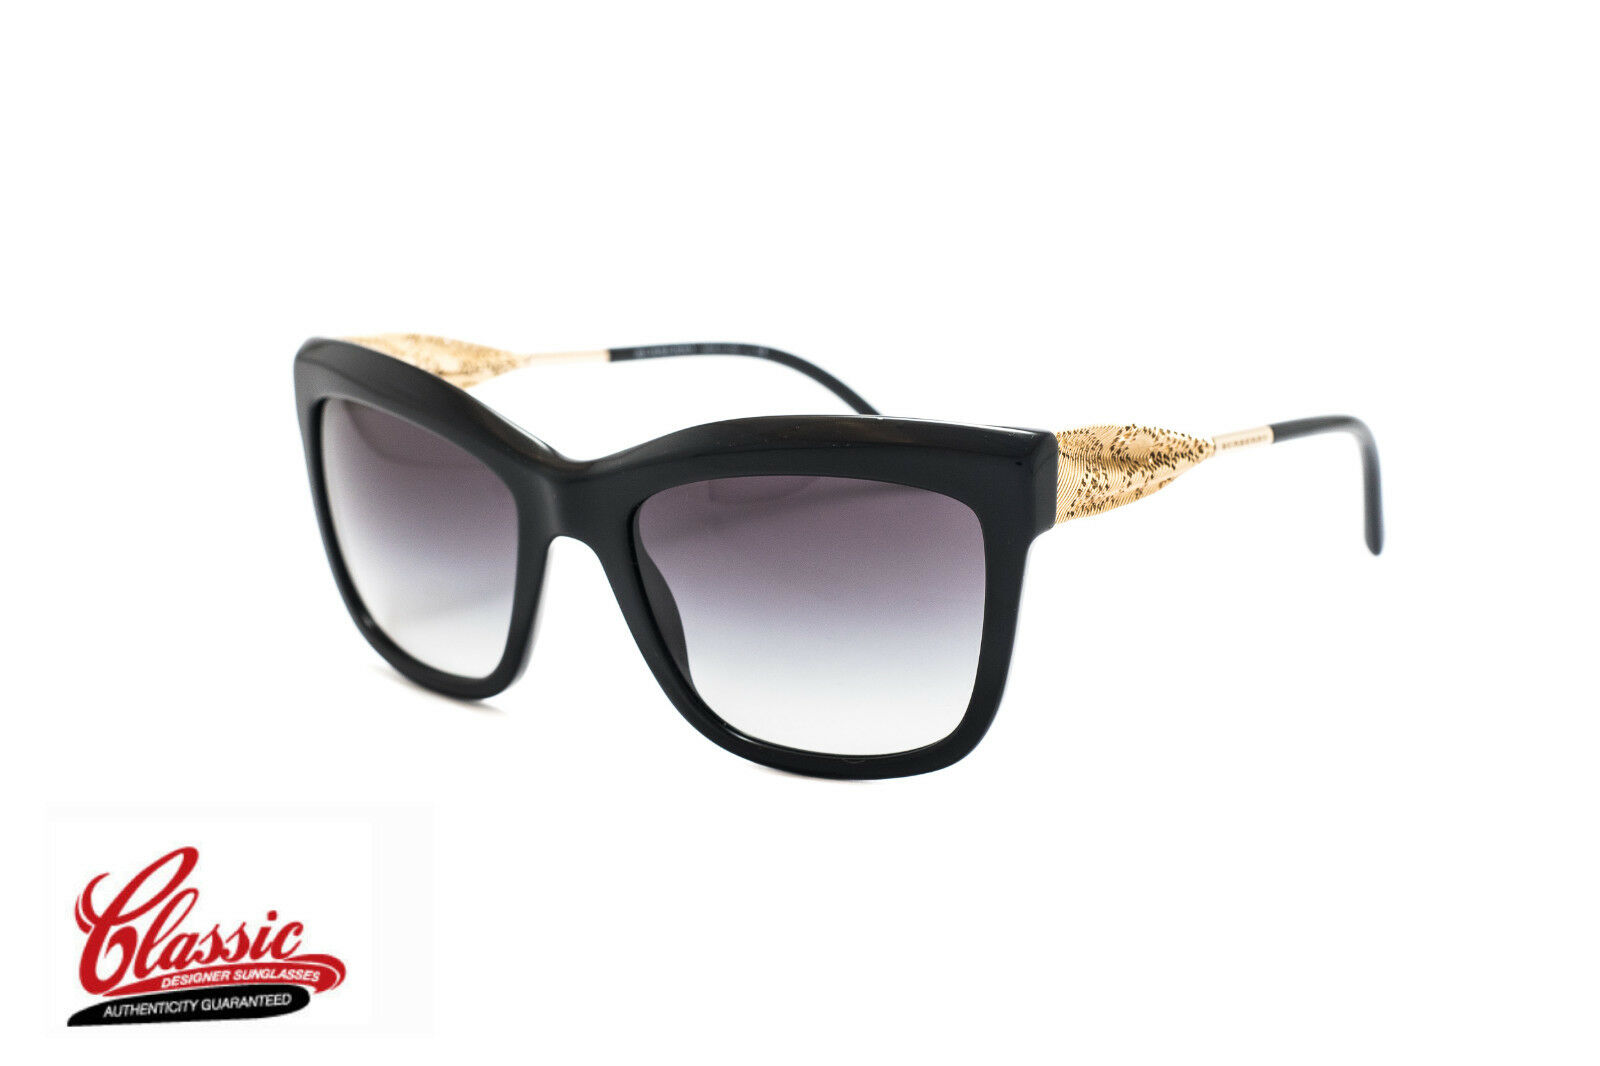 94a4f75675 Sunglasses Burberry Gabardine Lace Be4207 in Black for sale online ...